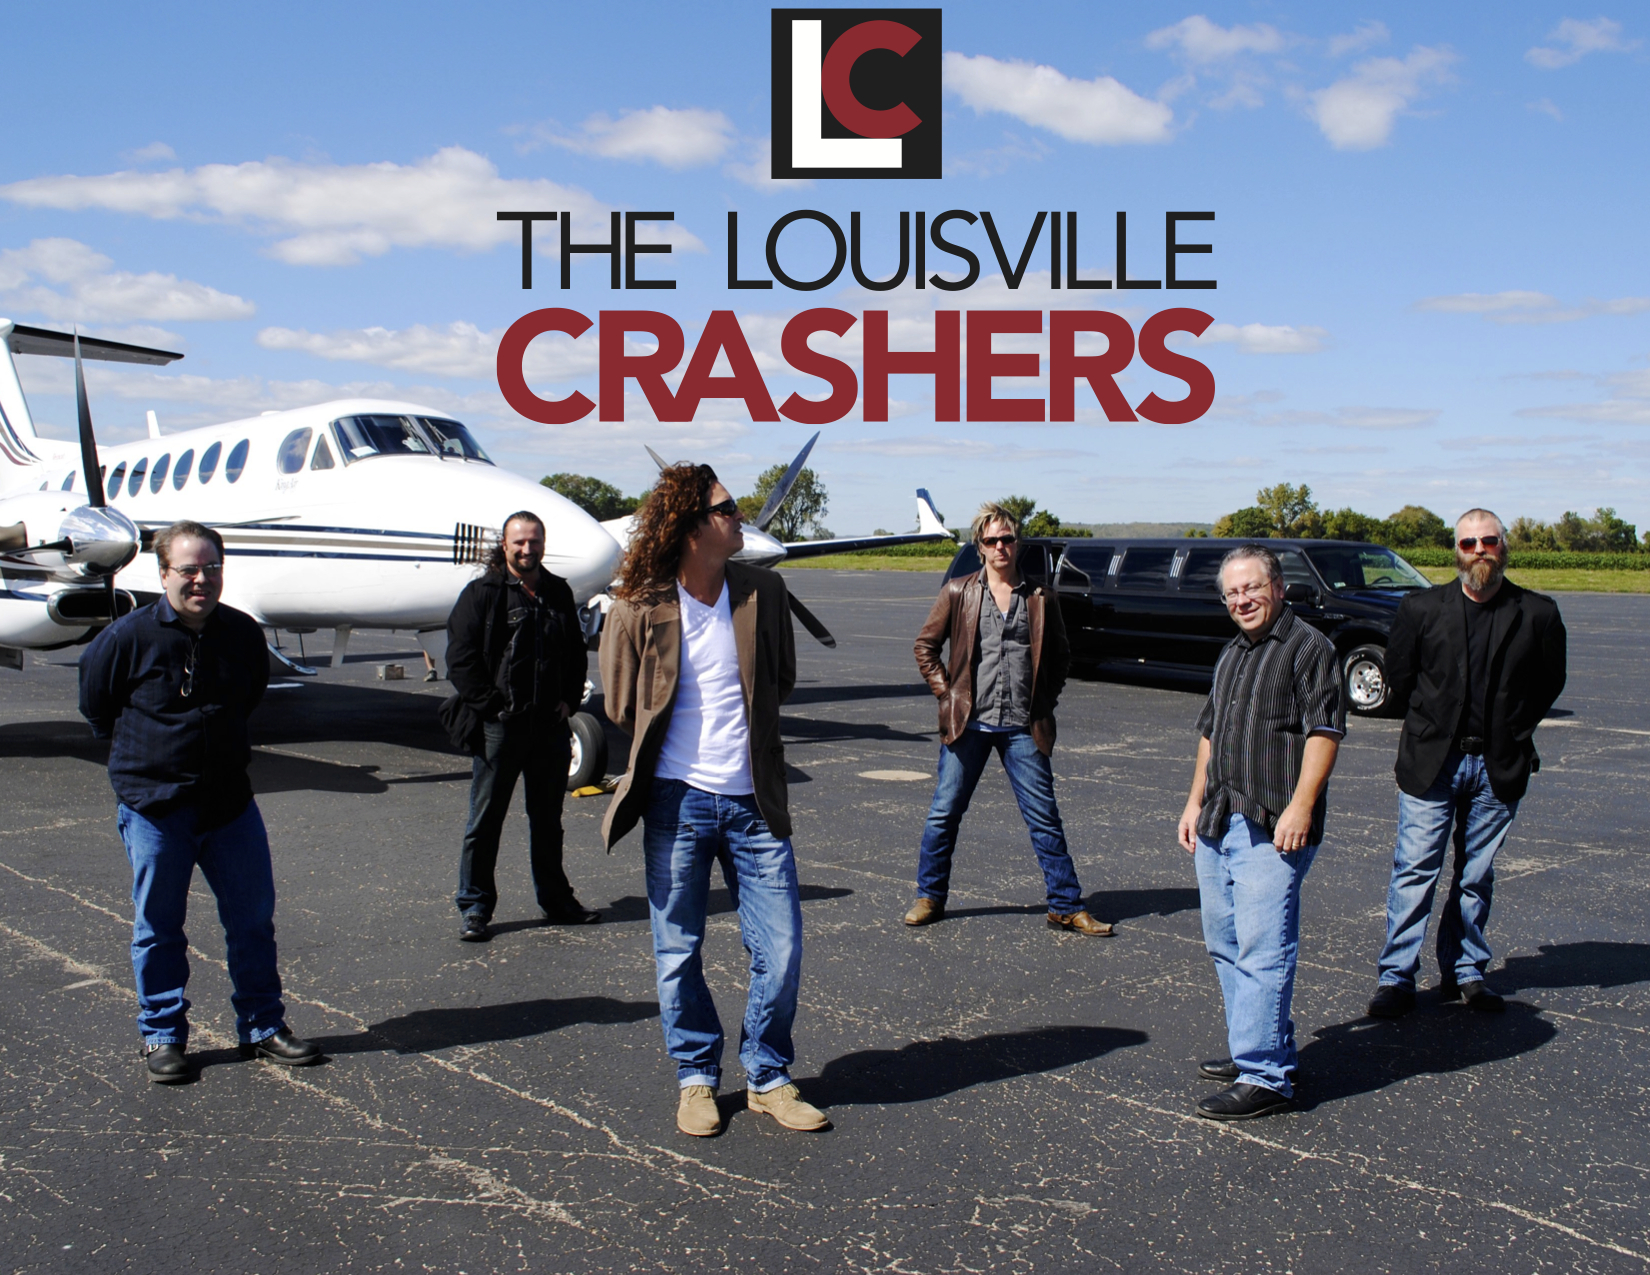 The Louisville Crashers